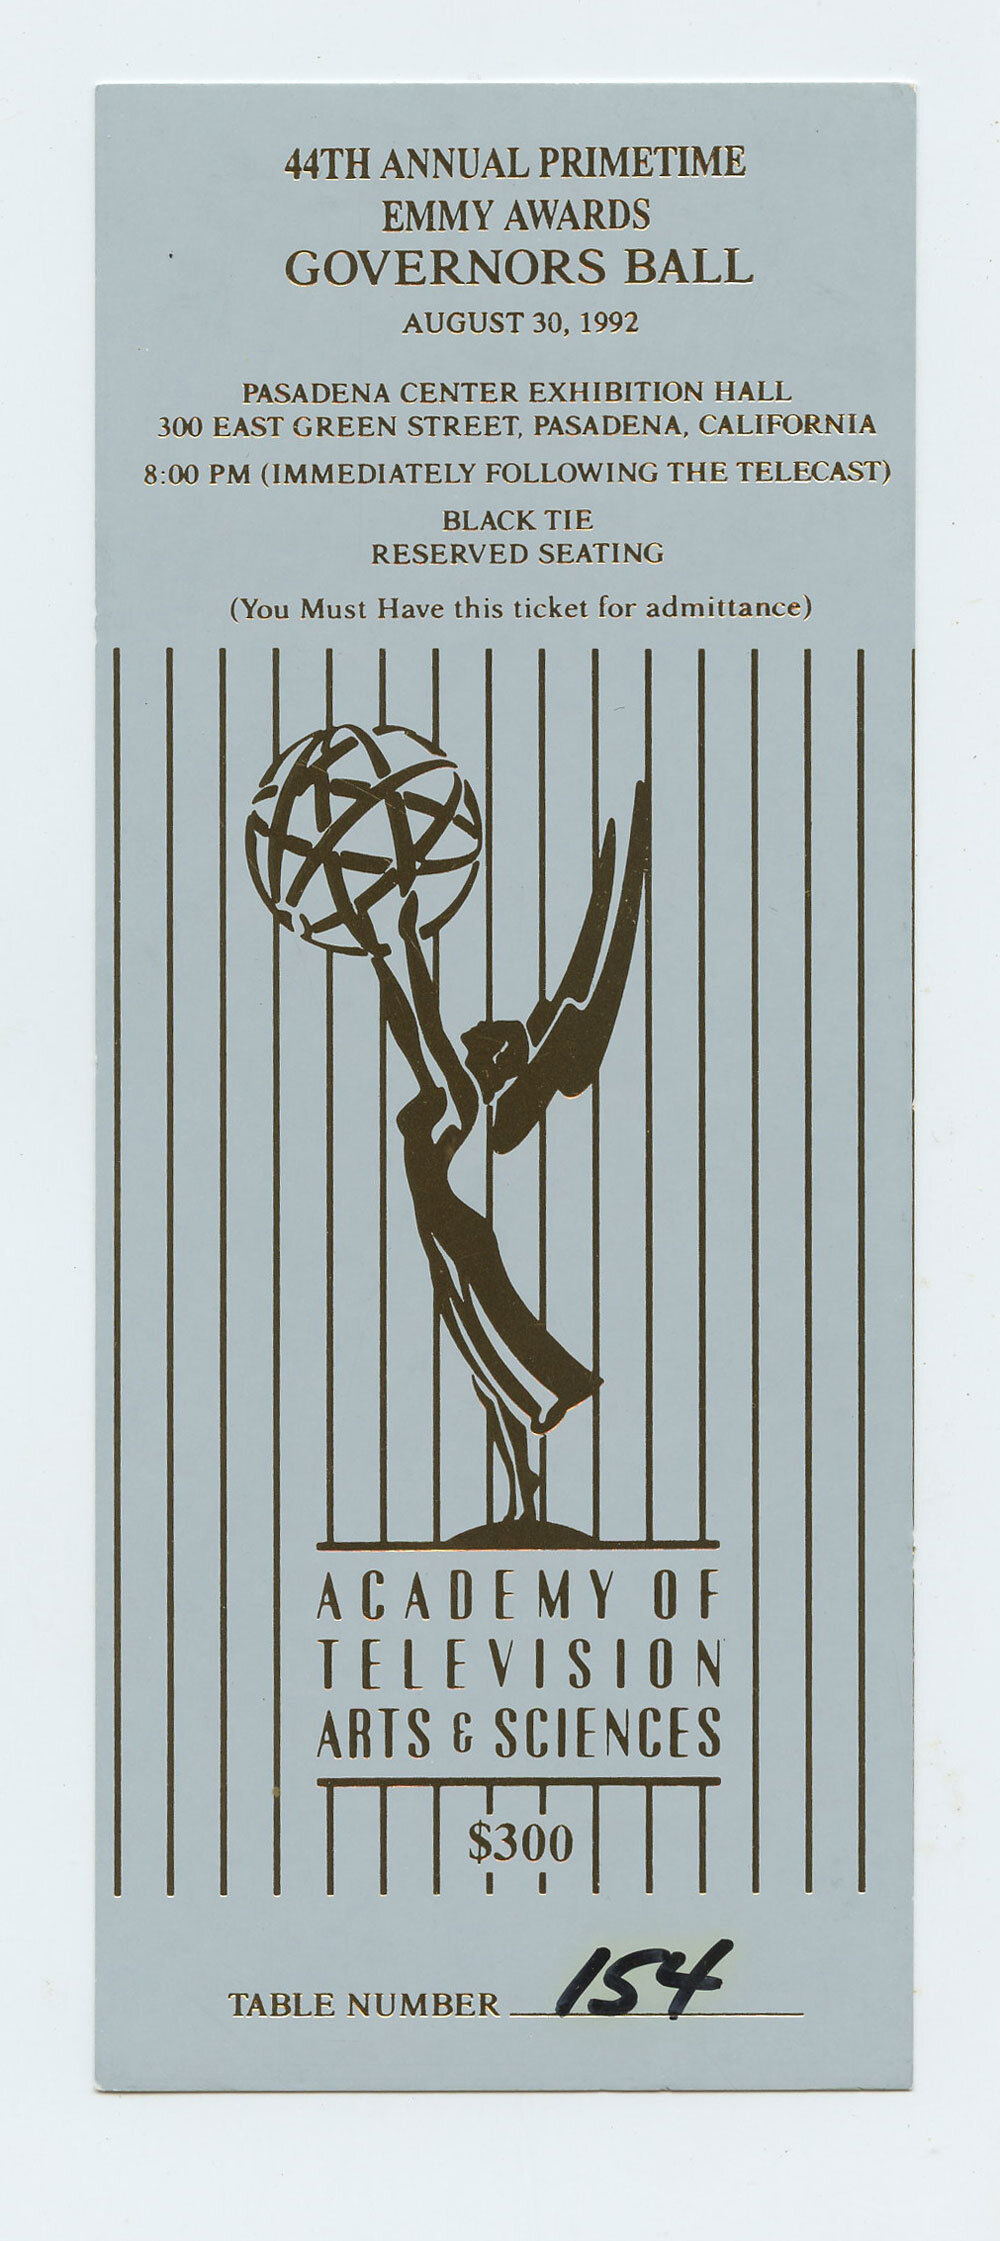 1992 44th Annual Primetime Emmy Awards Governors Ball ticket